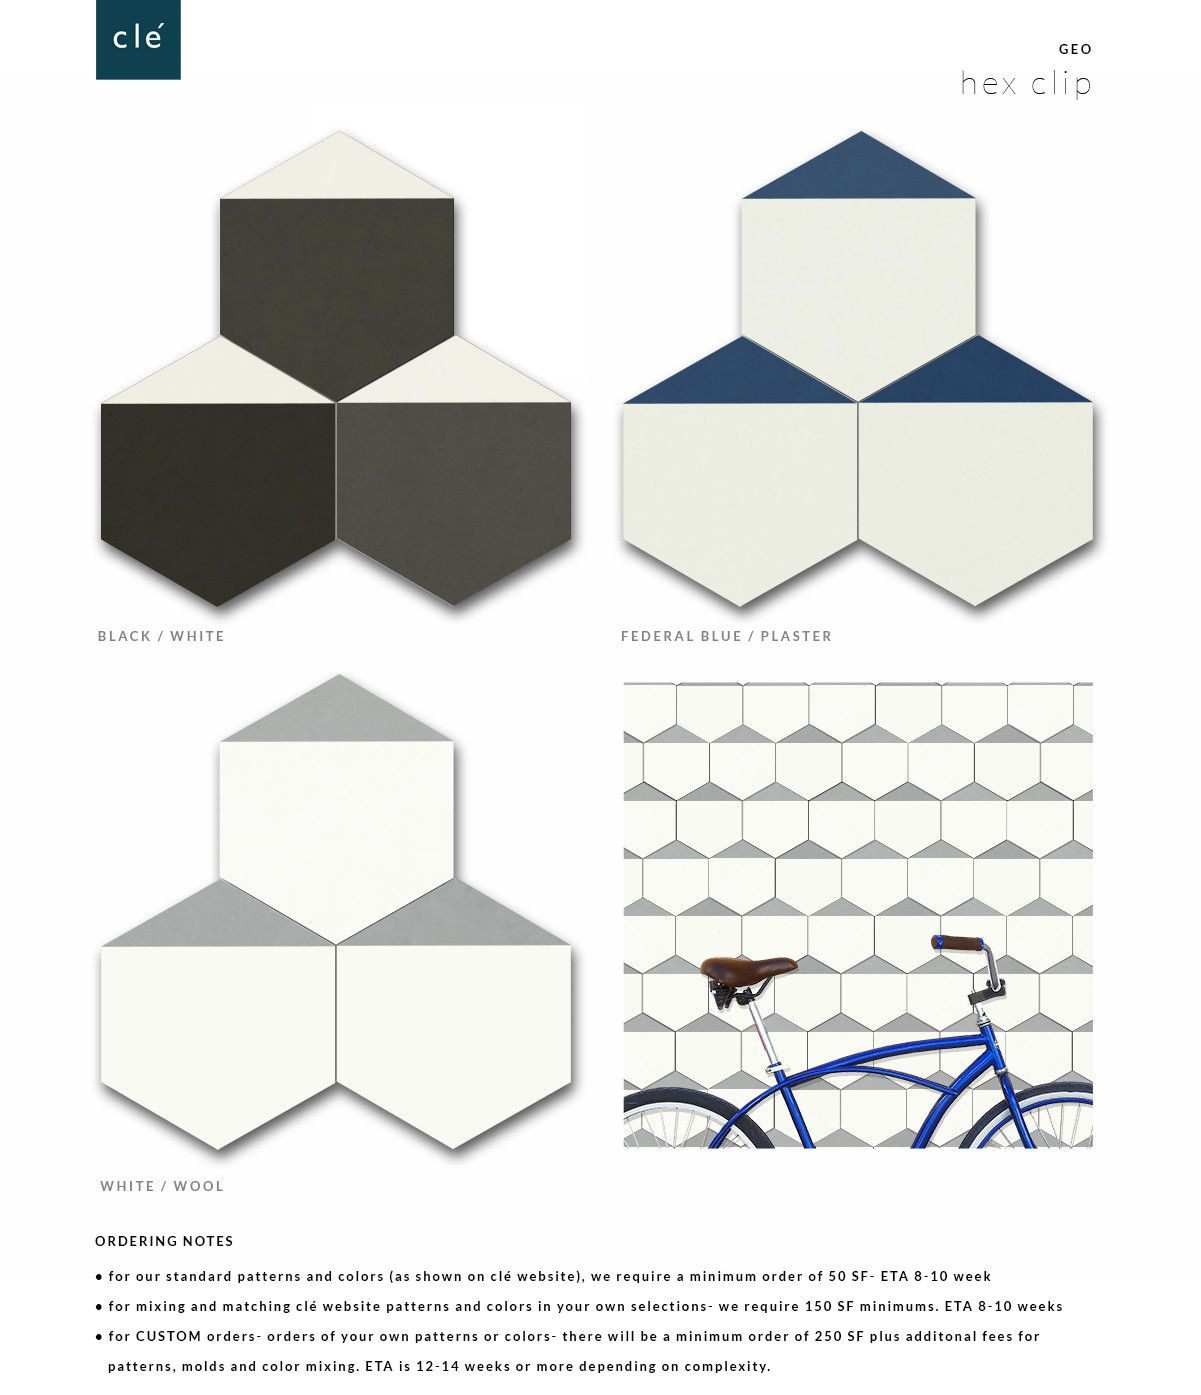 Hex clip 8 hex cement geo and master bath tile hex clip 8 hex dailygadgetfo Images